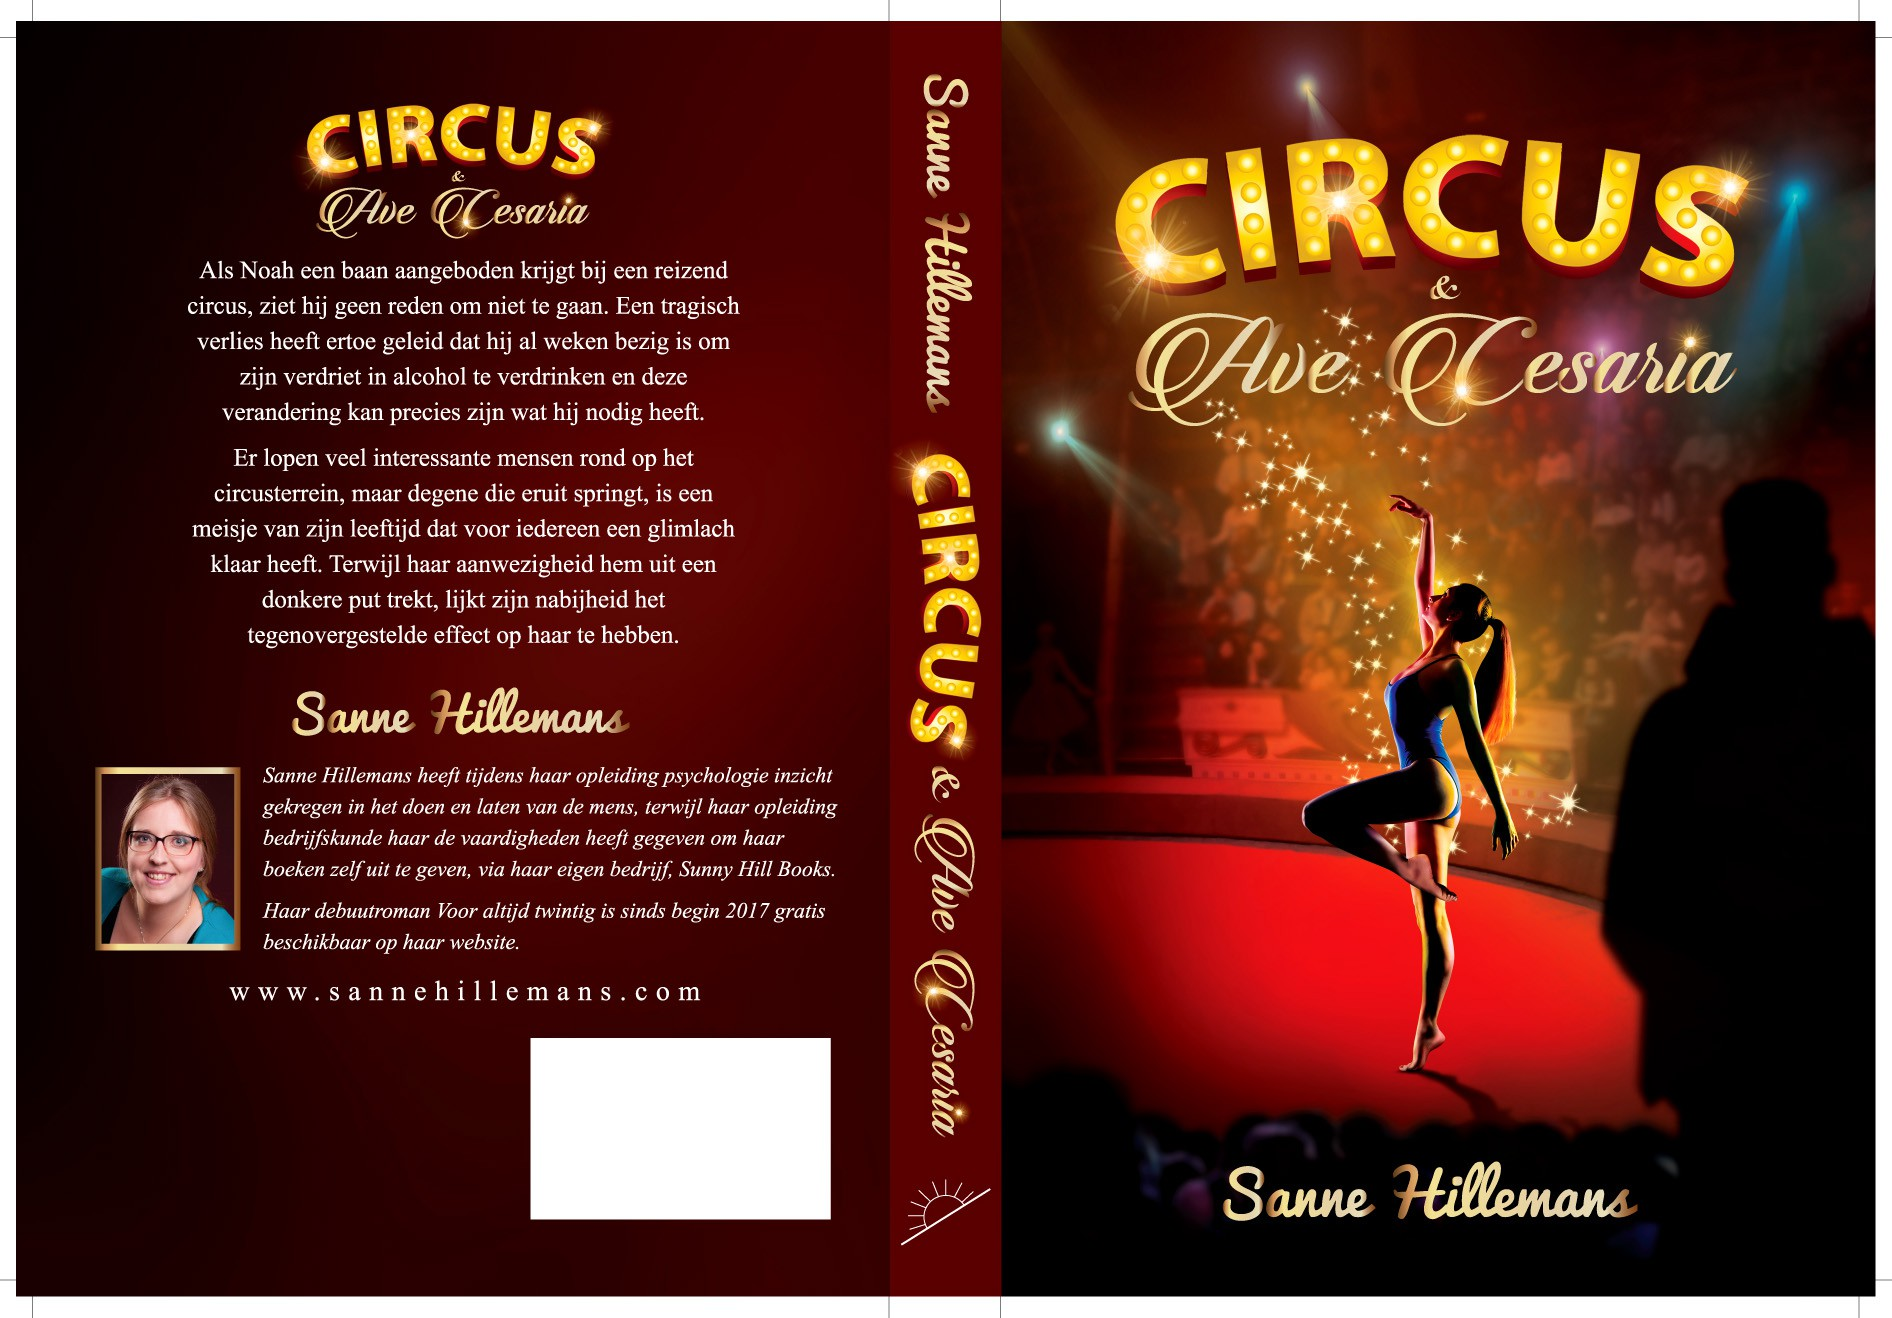 Design a bookcover for my novel about a Circus! (specific ideas!)